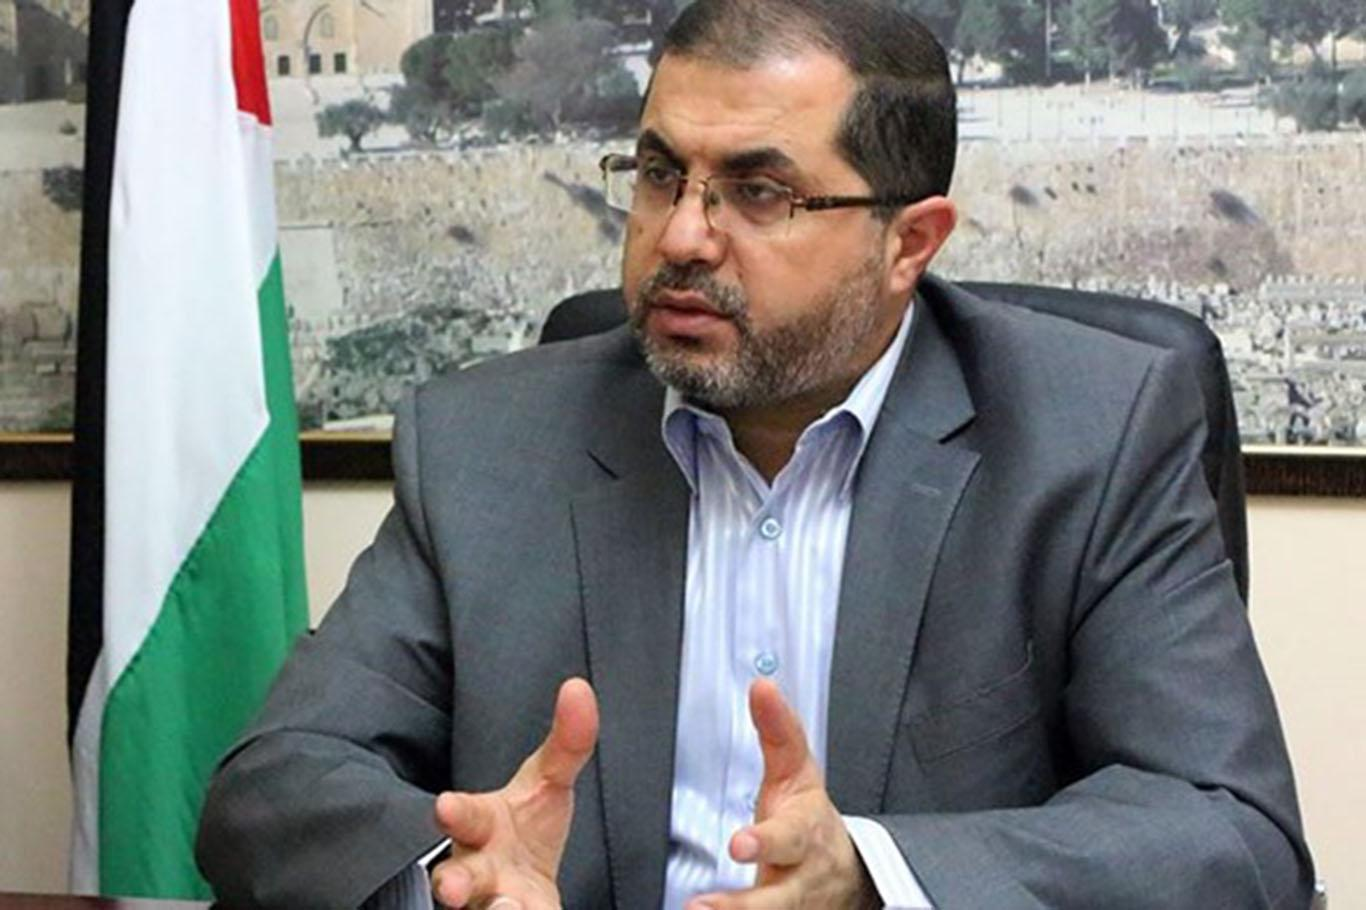 HAMAS welcomes UNESCO's unanimous decisions in favor of Palestine